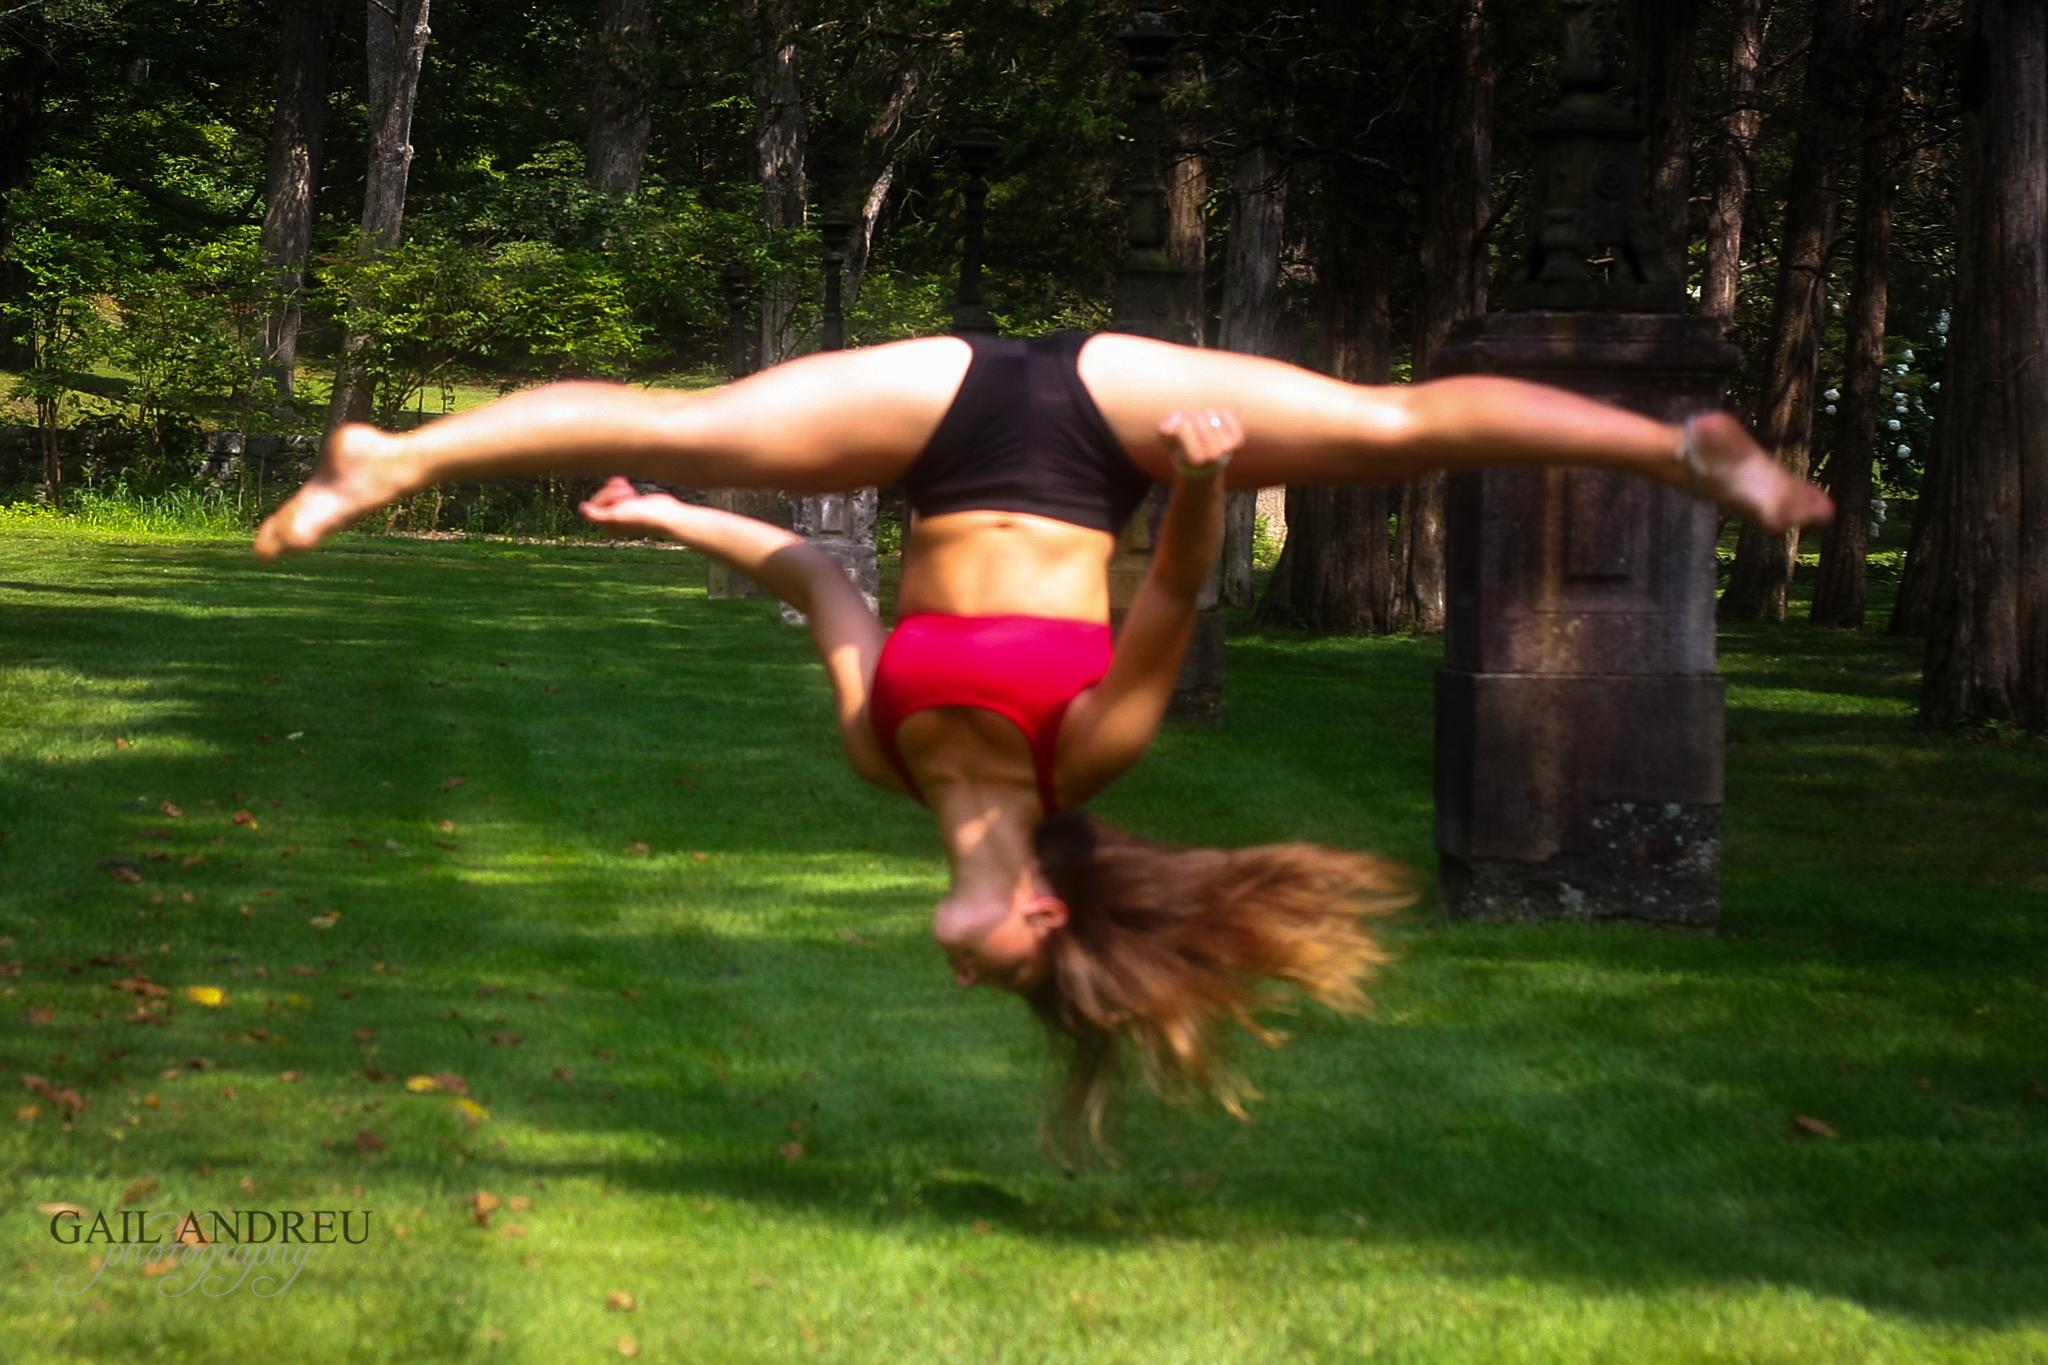 Flipping Out by Gail Andreu